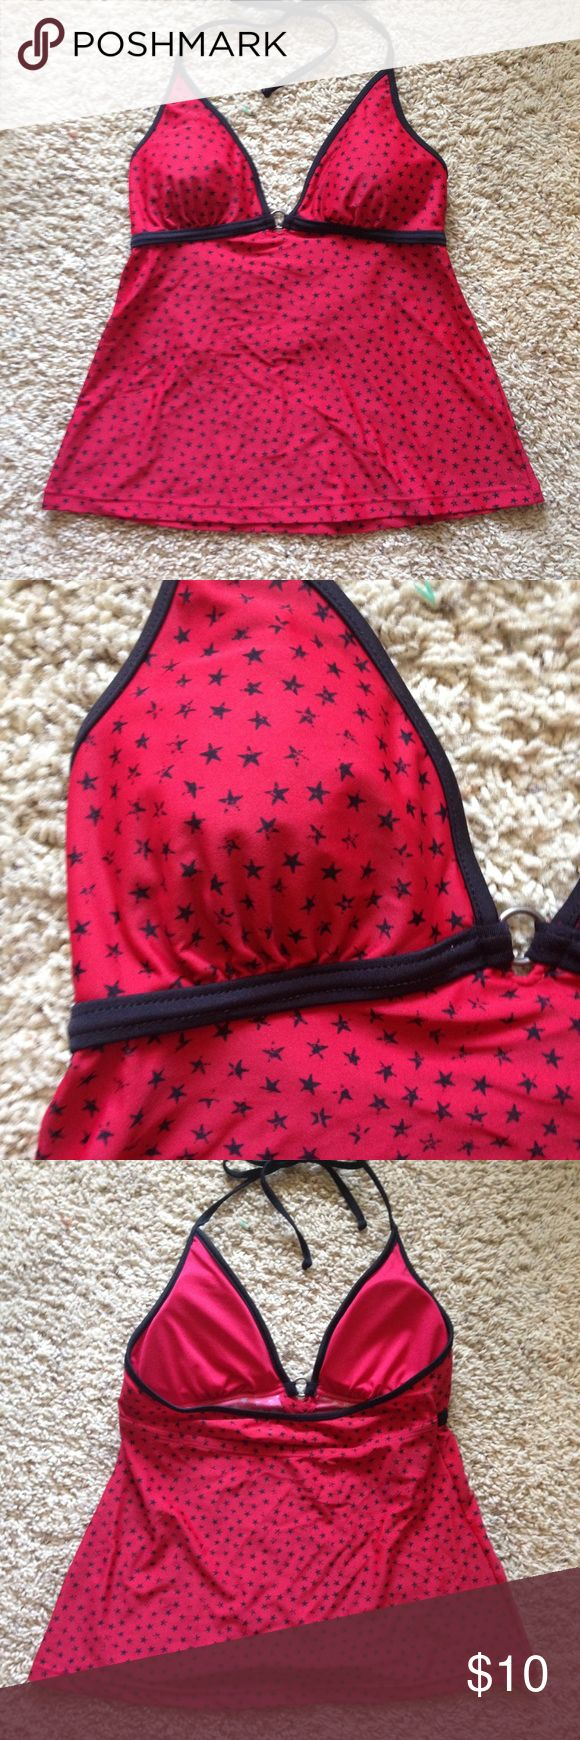 Red Tankini with Black Stars Converse One Star red halter tankini with black stars, size small. Good used condition. No stretching, fading, pilling, etc., but tag is torn as shown. Converse Swim